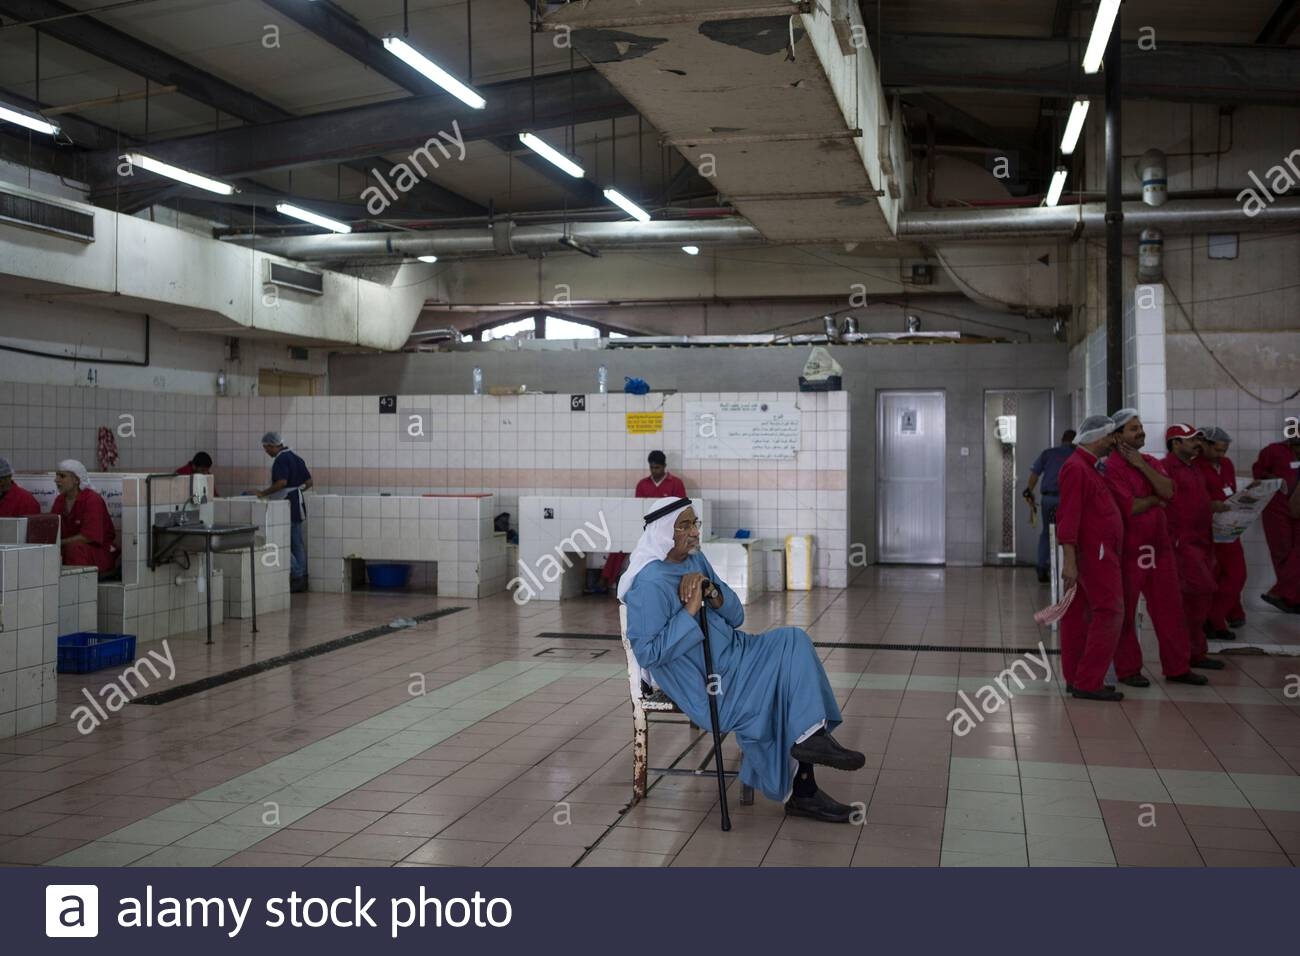 United Arab Emirates - Abu Dhabi - An old Emirati man sitting and waiting for his fish to be cleaned at the Fish market. Stock Photo